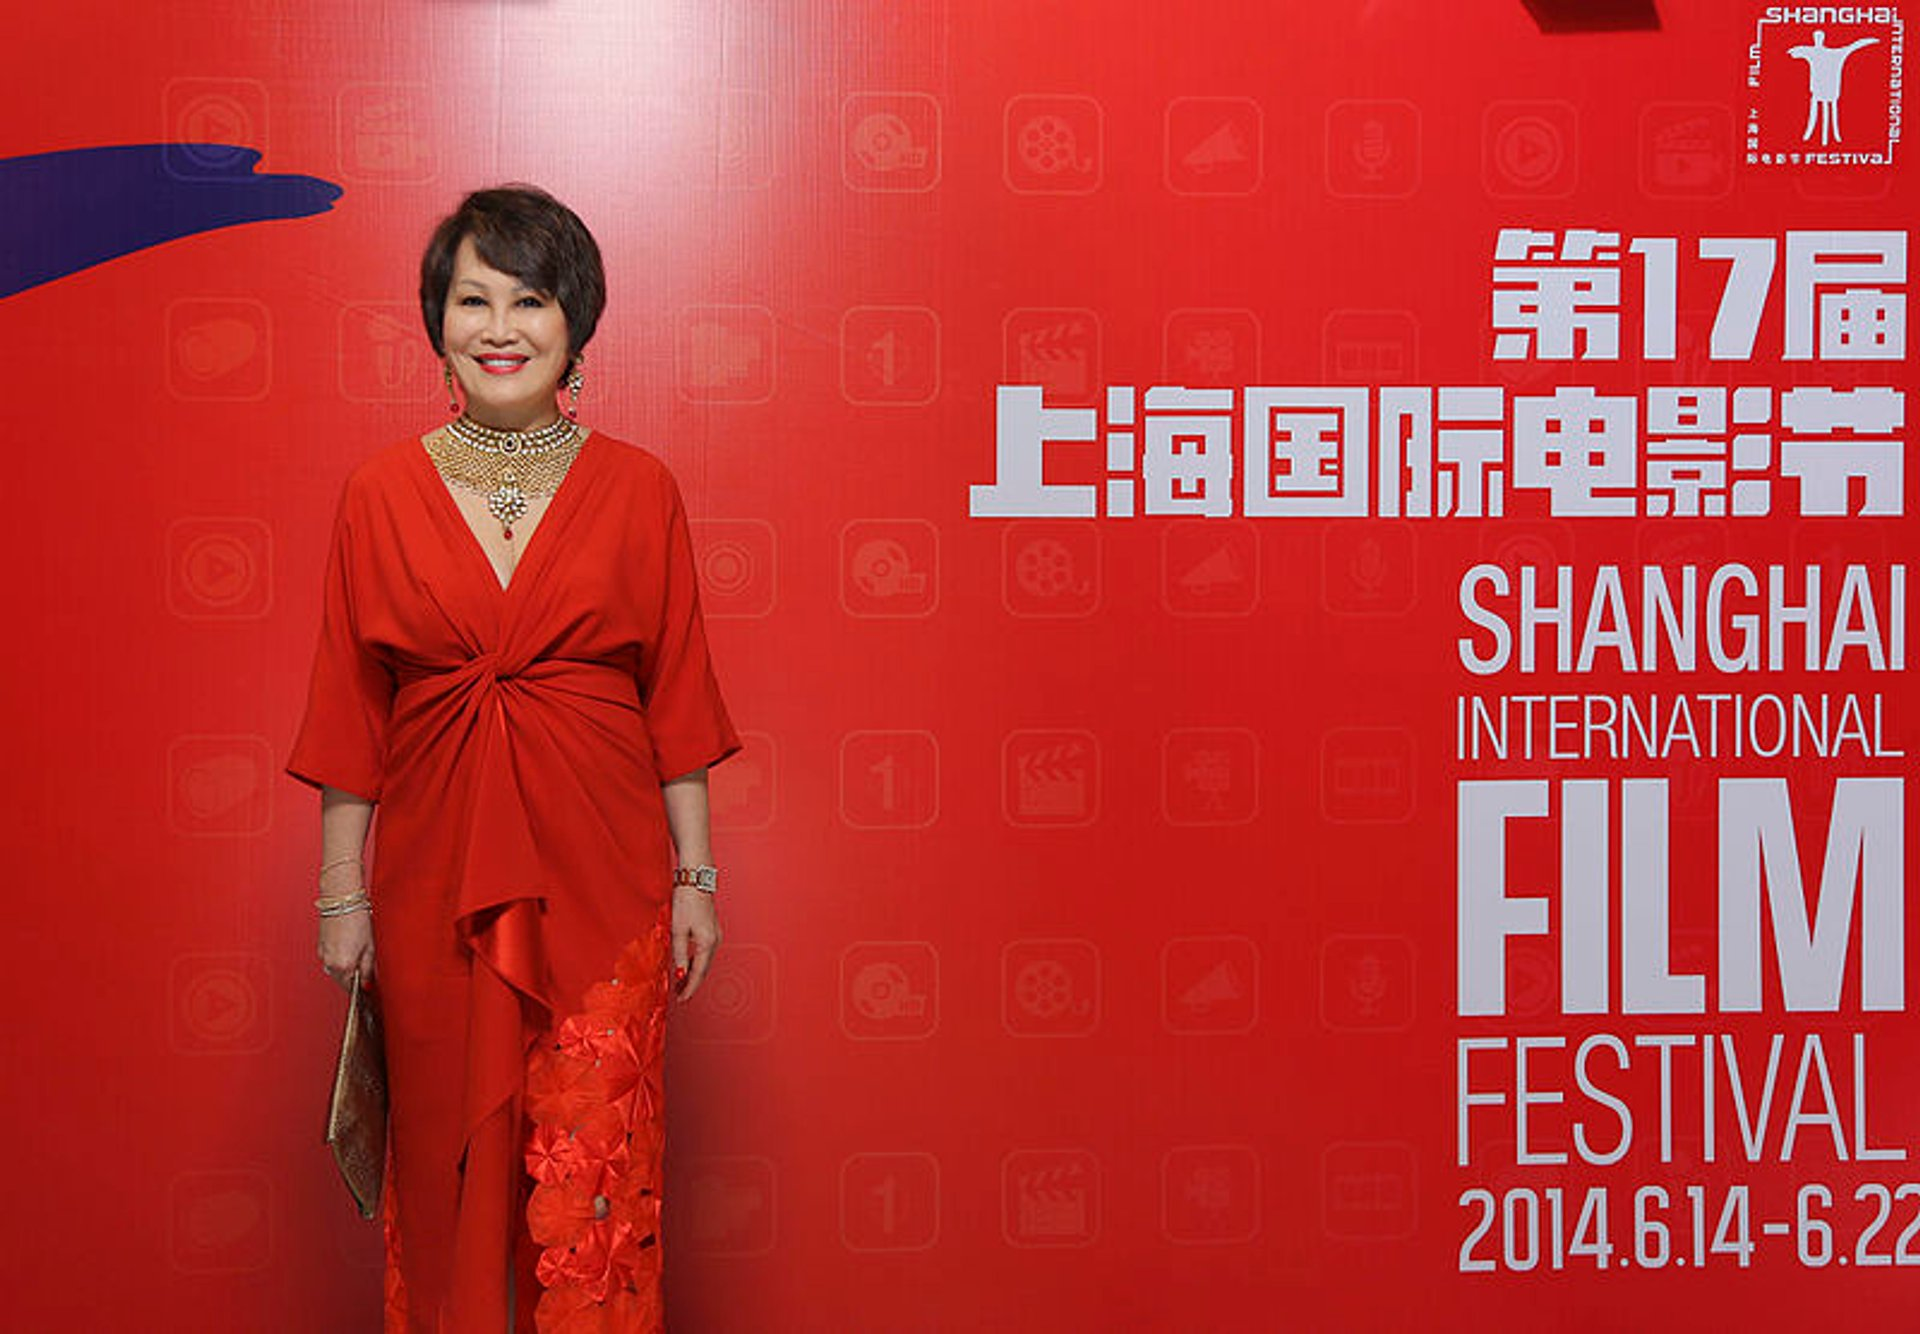 Shanghai International Film Festival in Shanghai - Best Season 2020